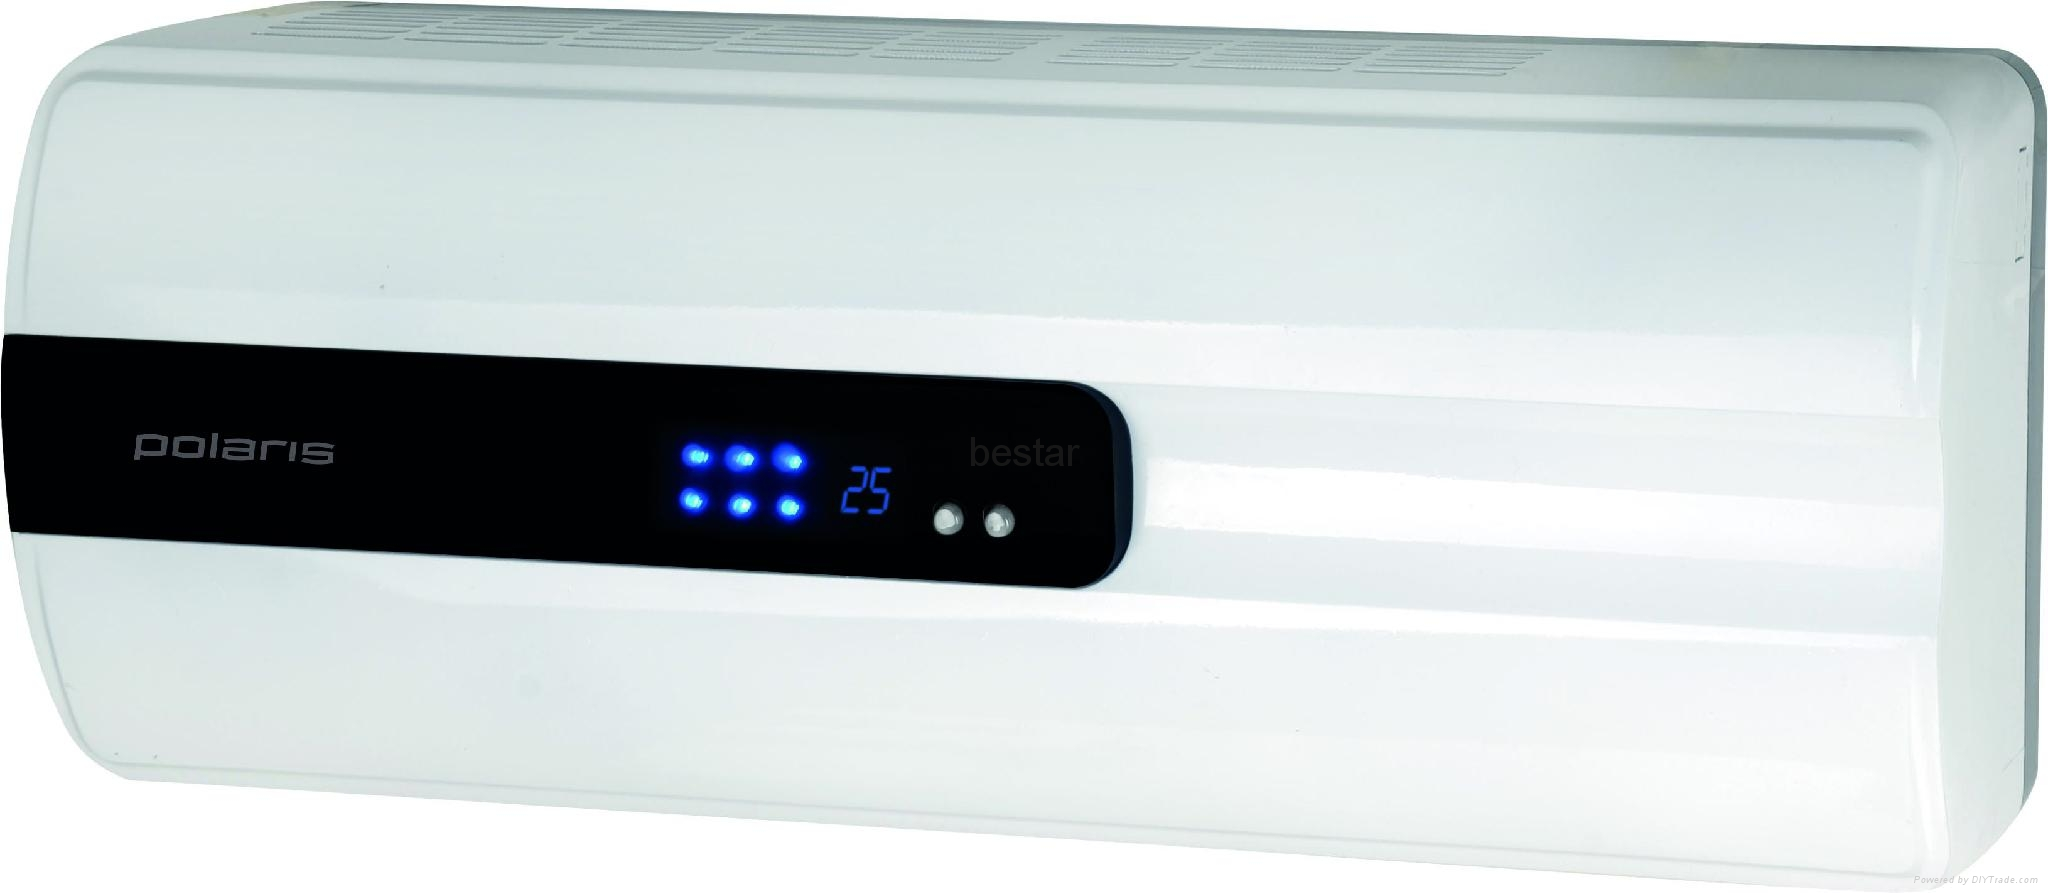 Exceptionnel 2KW OVER DOOR FAN HEATER COOLER WALL MOUNTED REMOTE CONTROL LED DISPLAY  IPX4 1